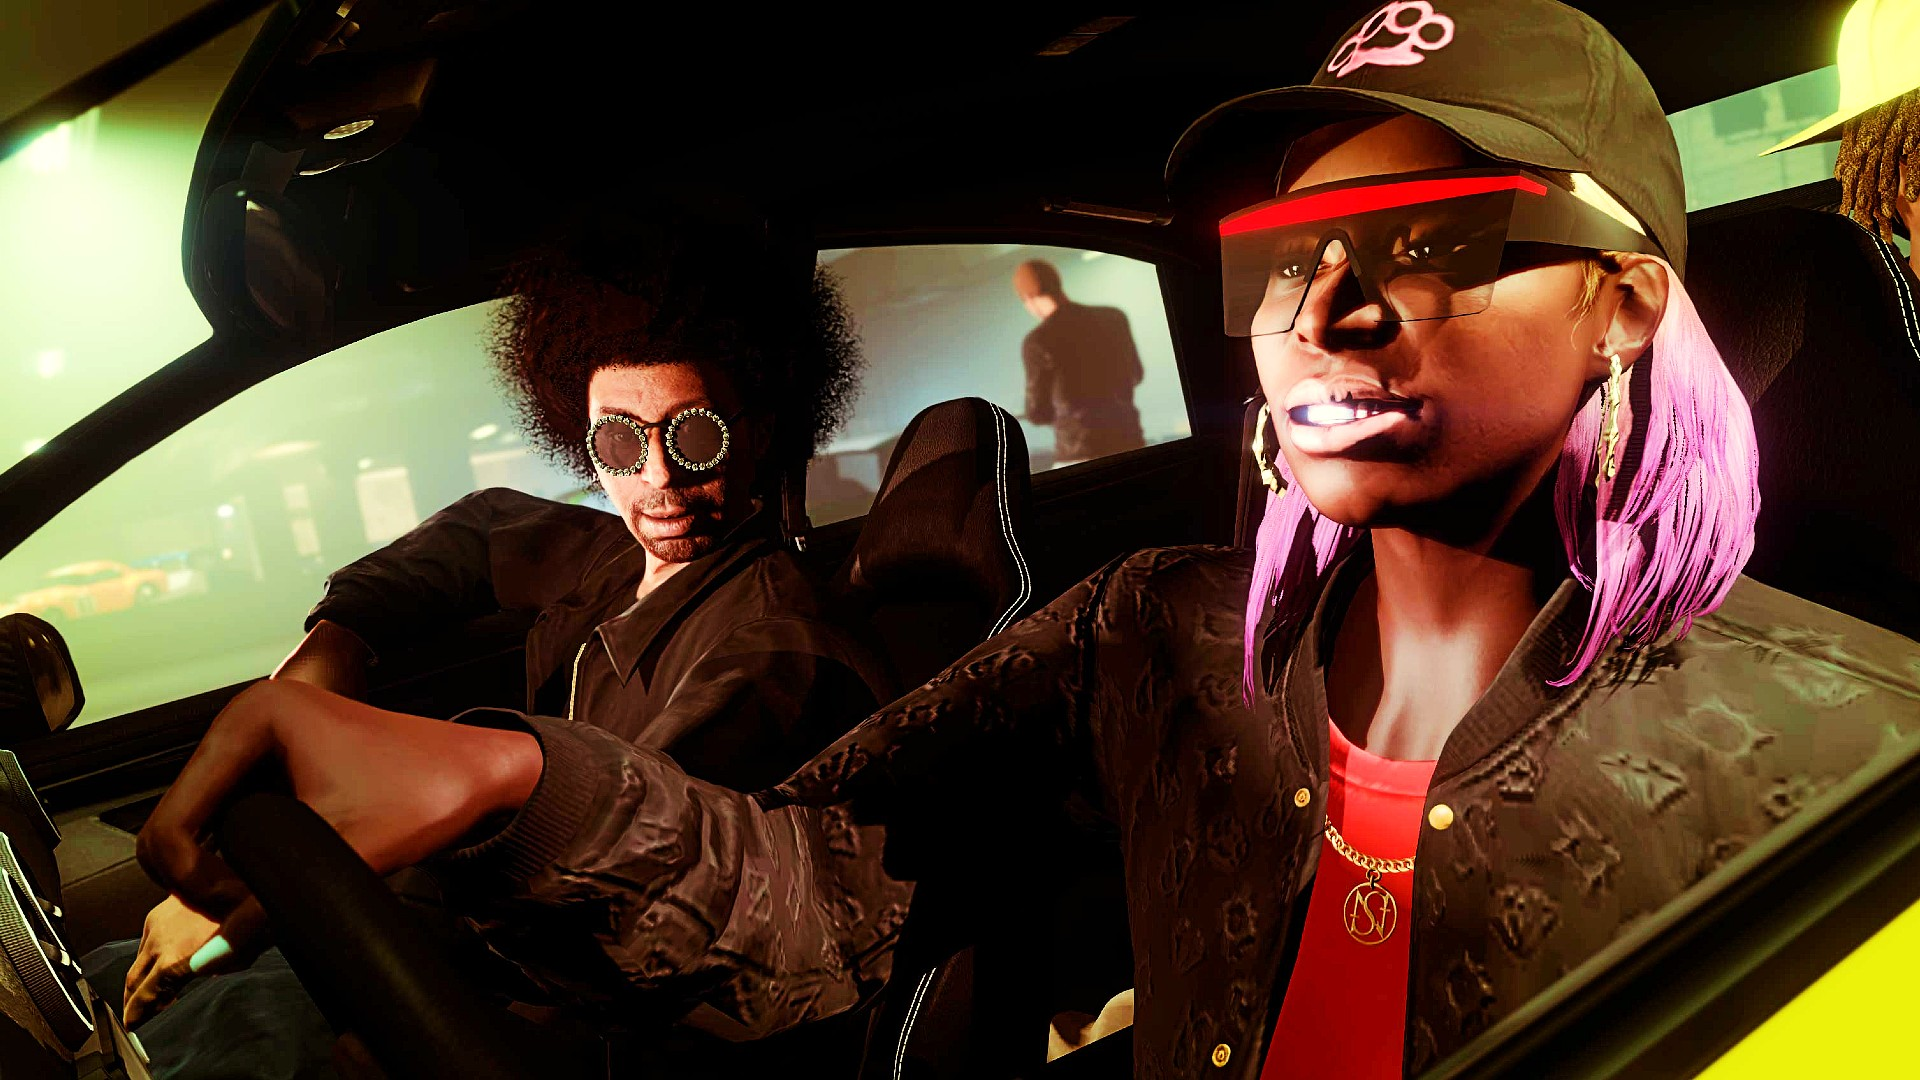 GTA Online's weekly update adds a new Los Santos Tuners car, new collectables